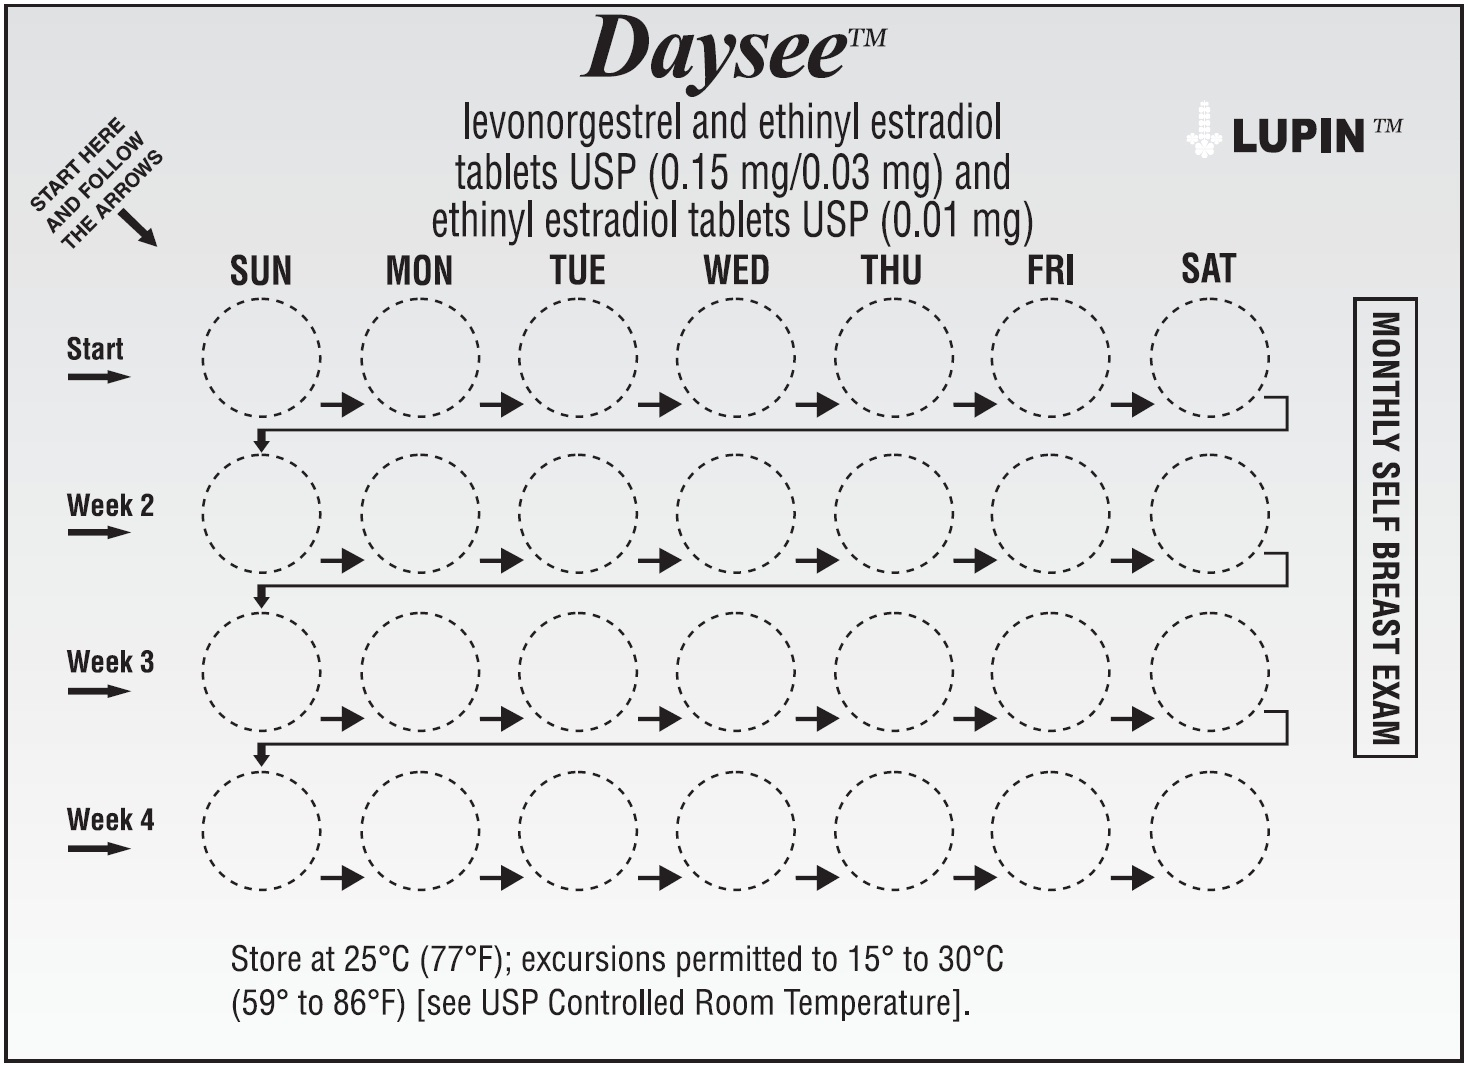 Daysee By Lupin Pharmaceuticals Inc